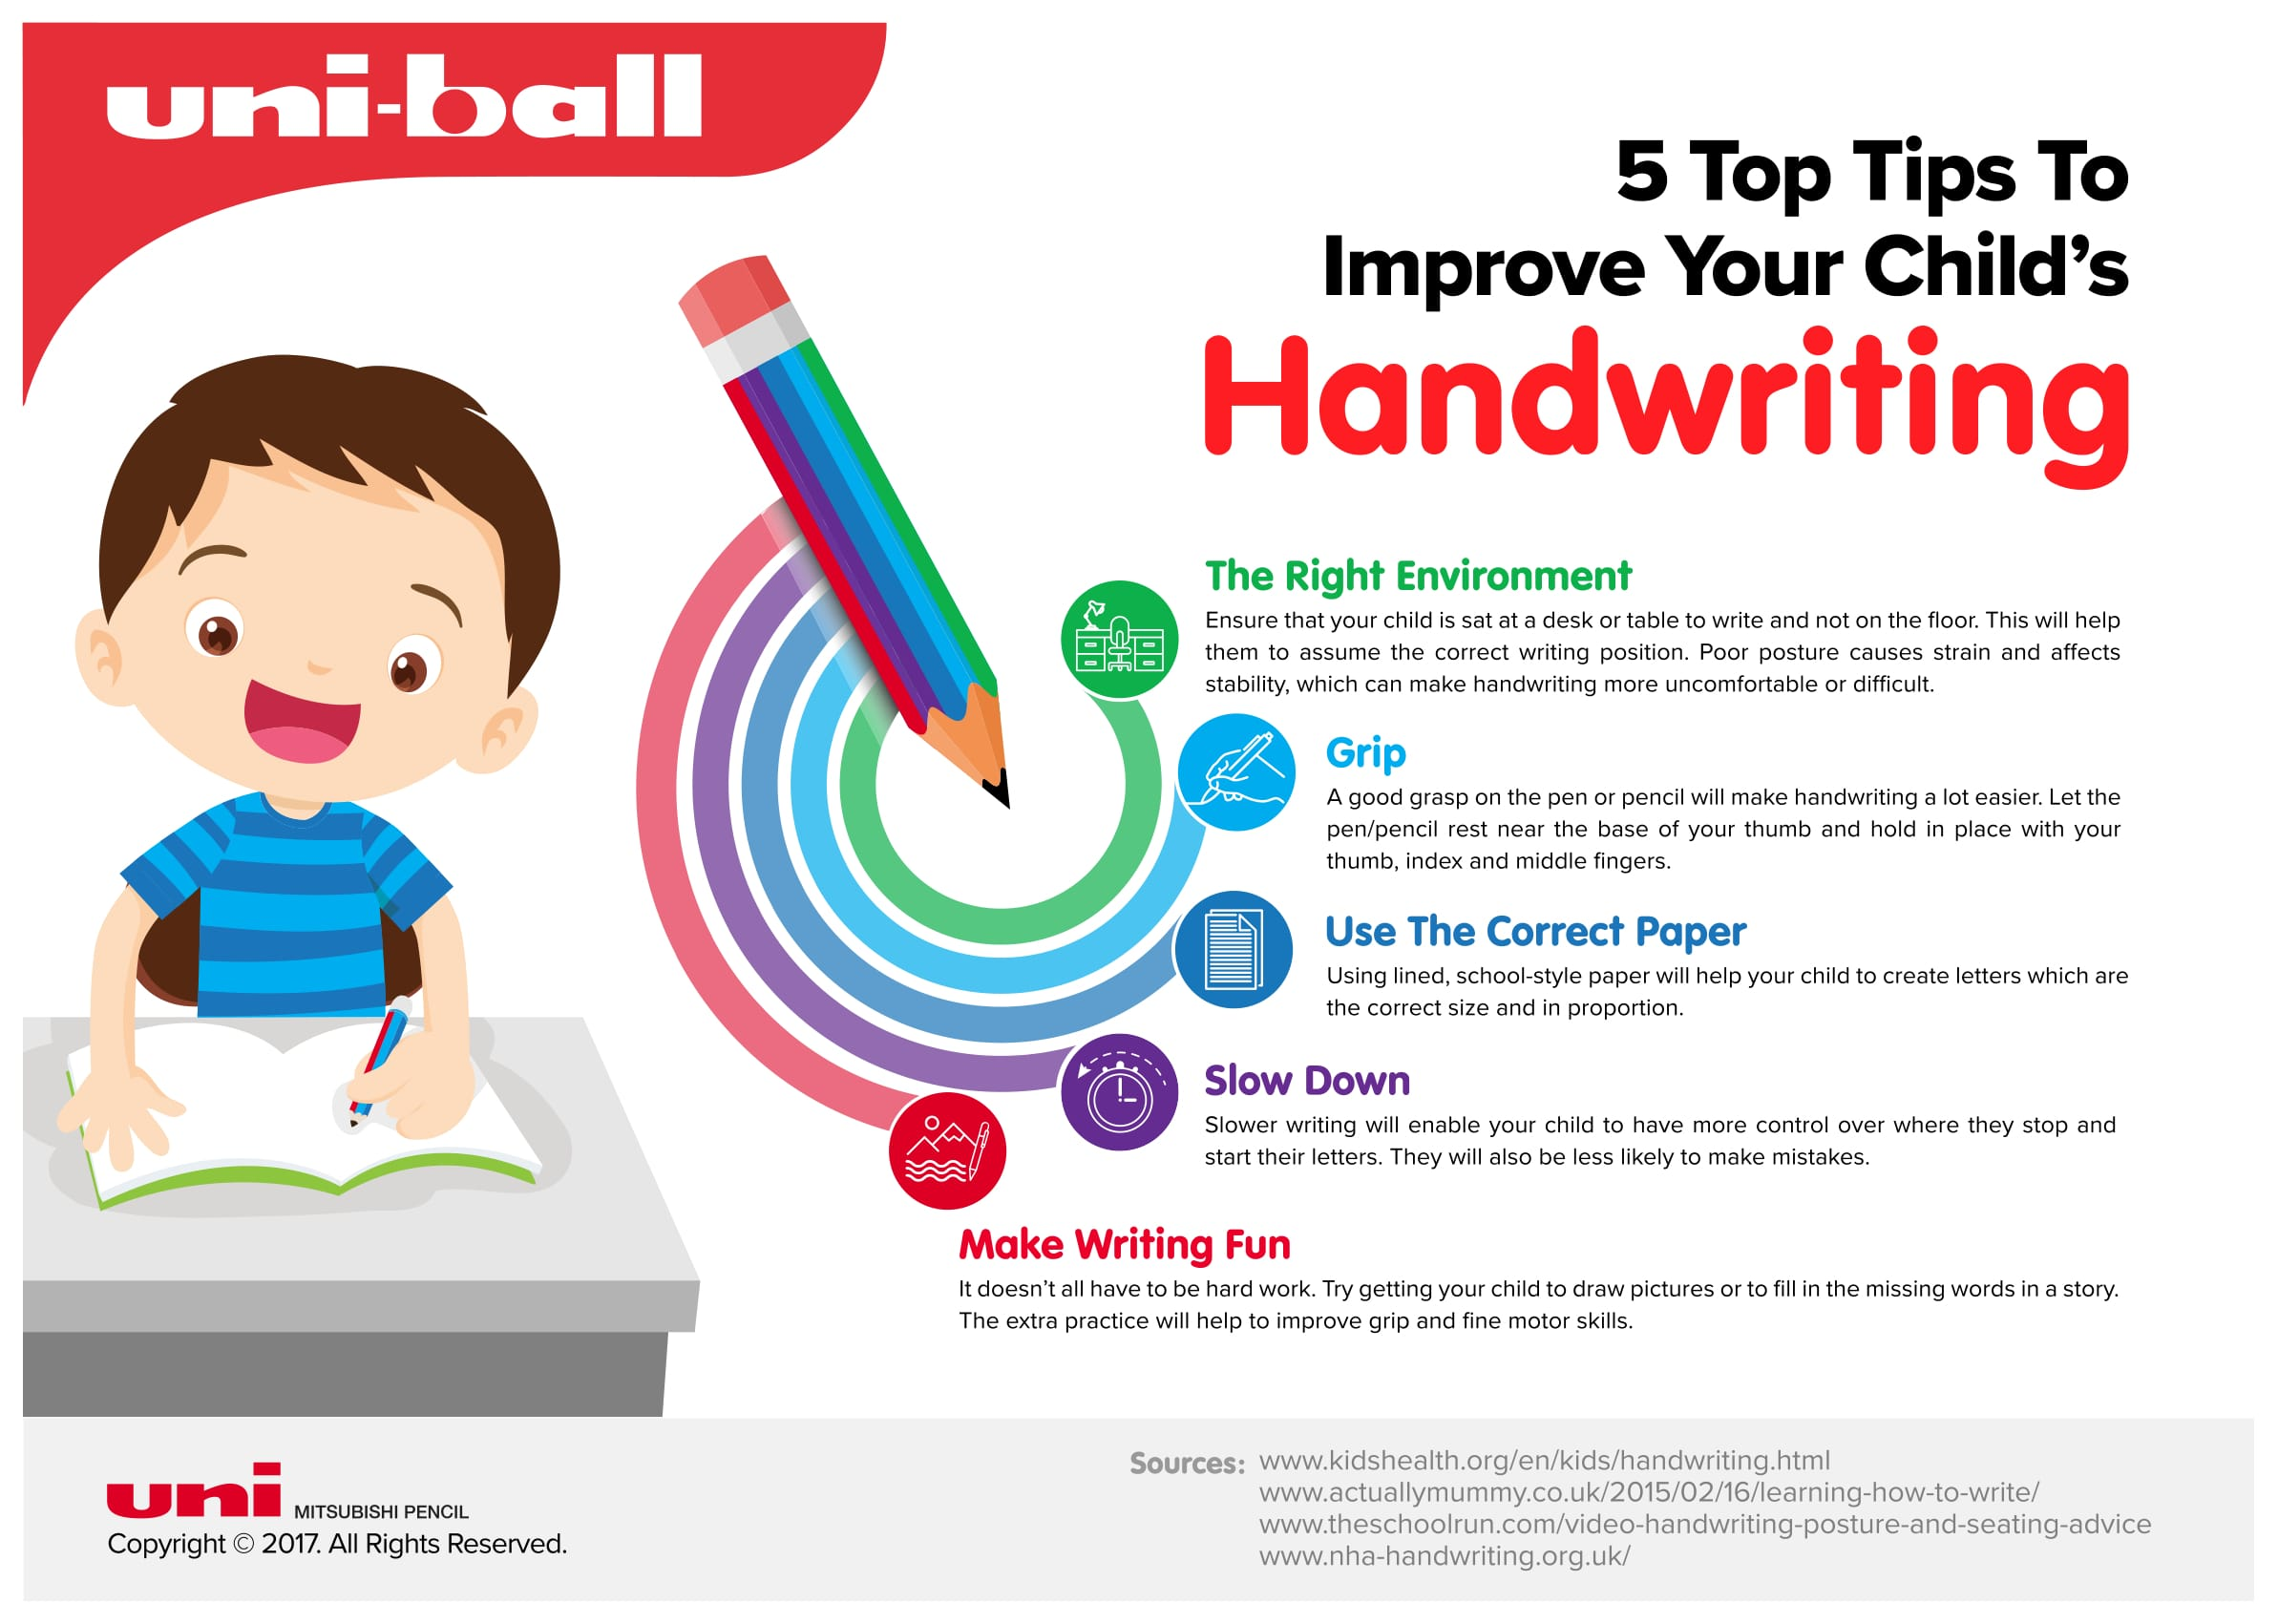 5-Top-Tips-To-Improve-Your-Childs-Handwriting_guide-1